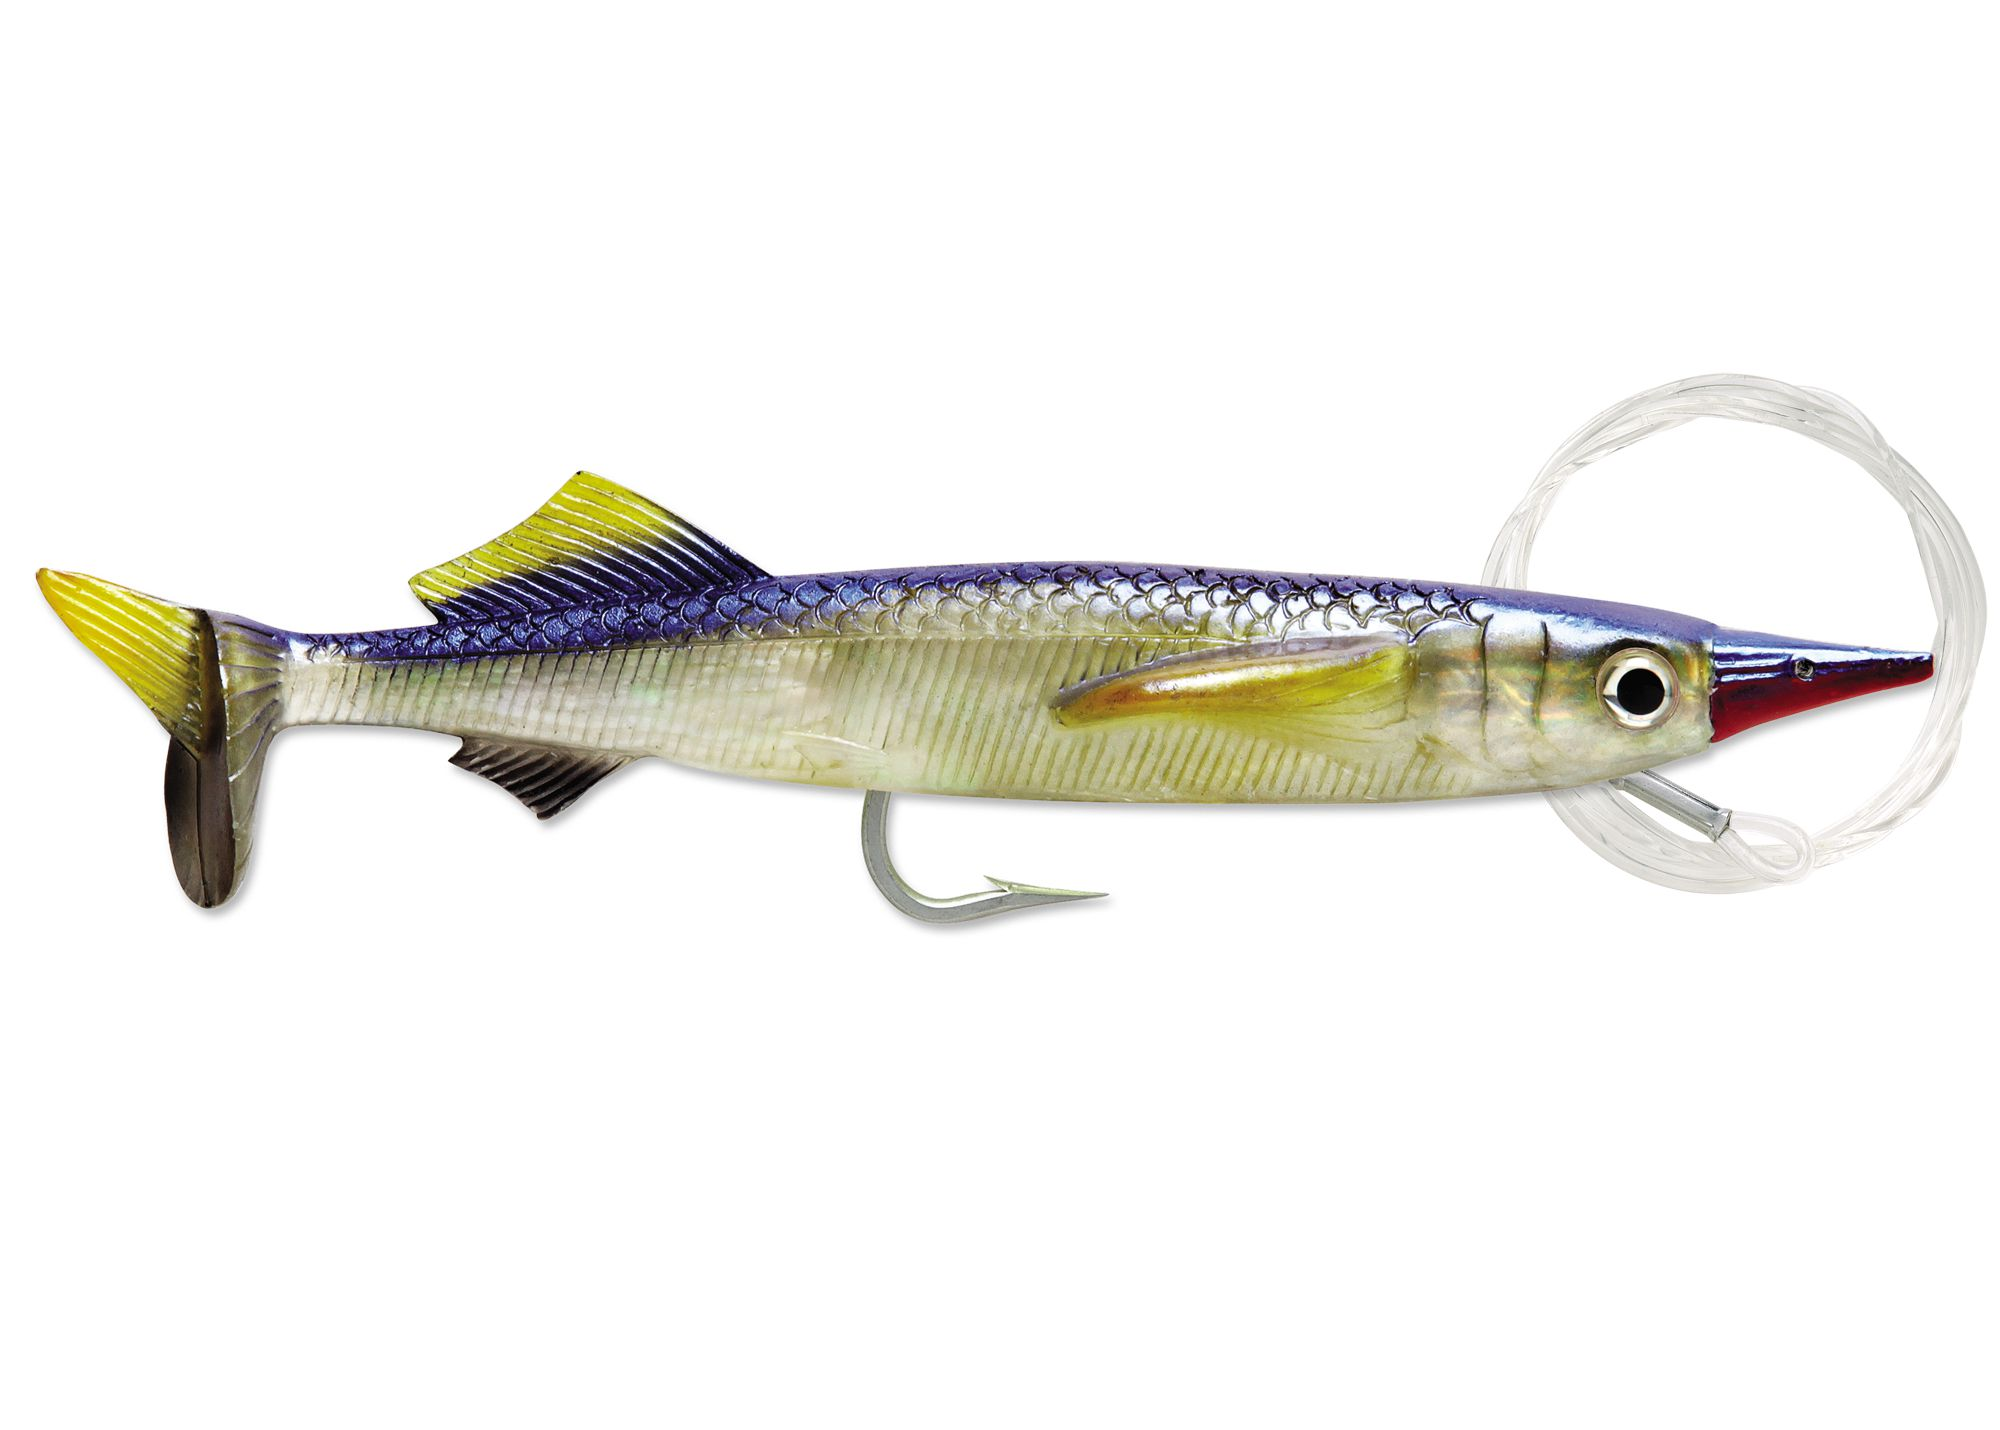 Lures Williamson LIVE SWIMMING BALLYHOO LSBH09 NATURAL BALLYHOO